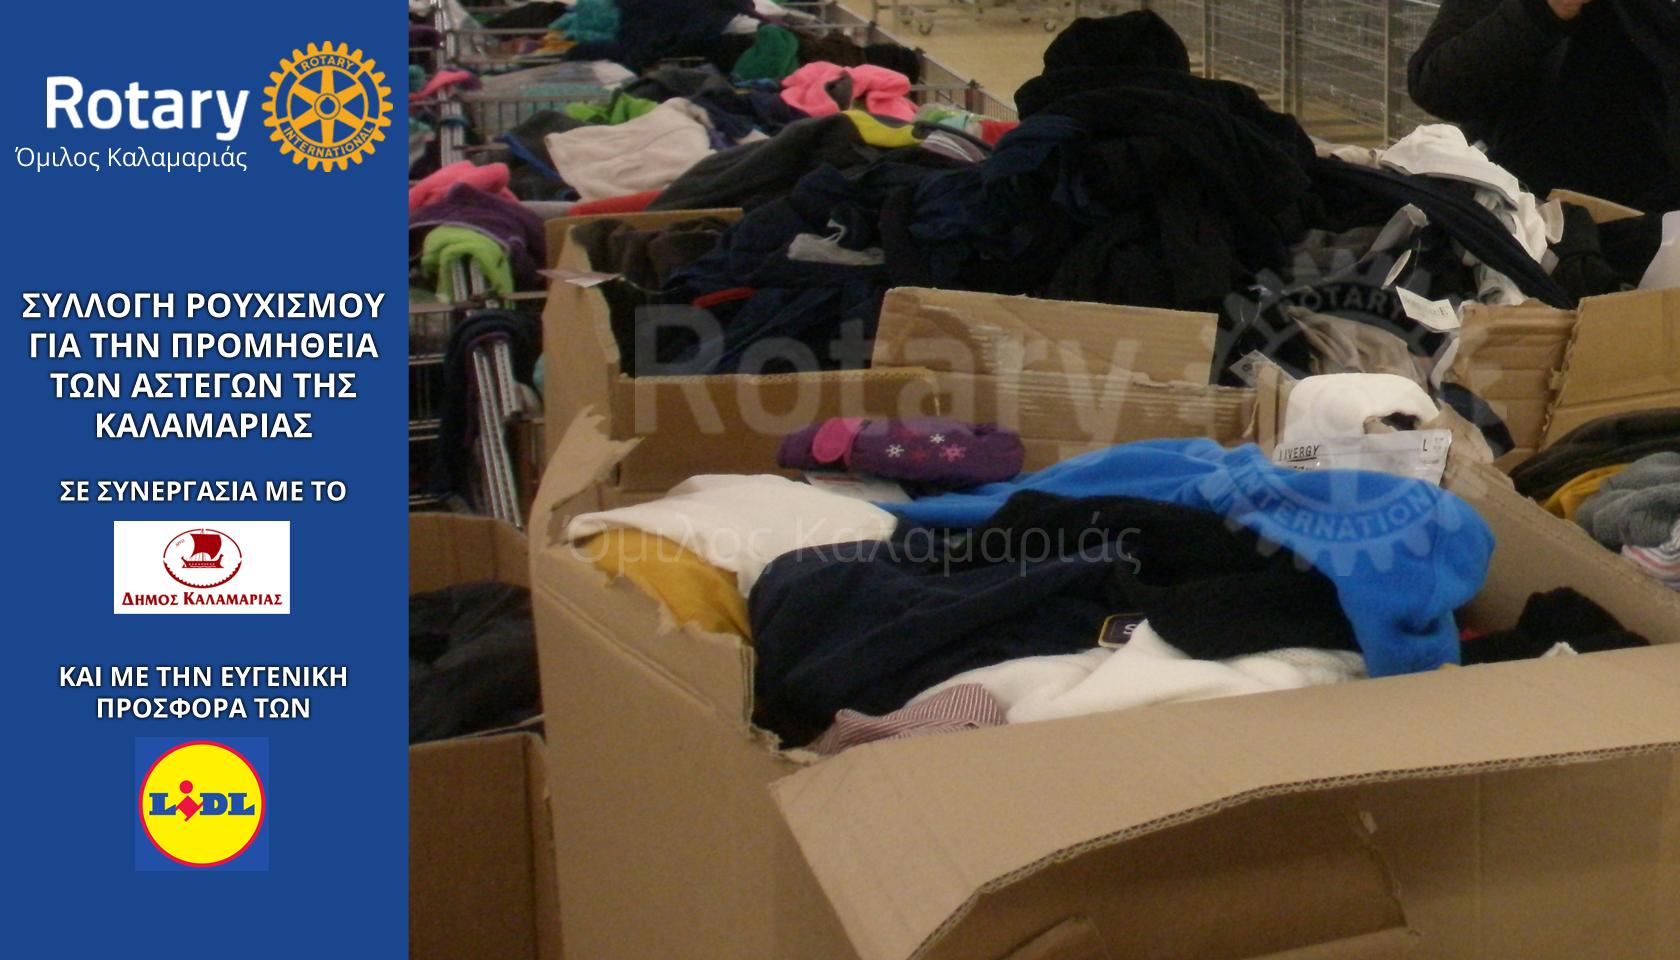 Rotary-Club-Kalamaria-and-Lidl-give-clothes-for-homeles-009